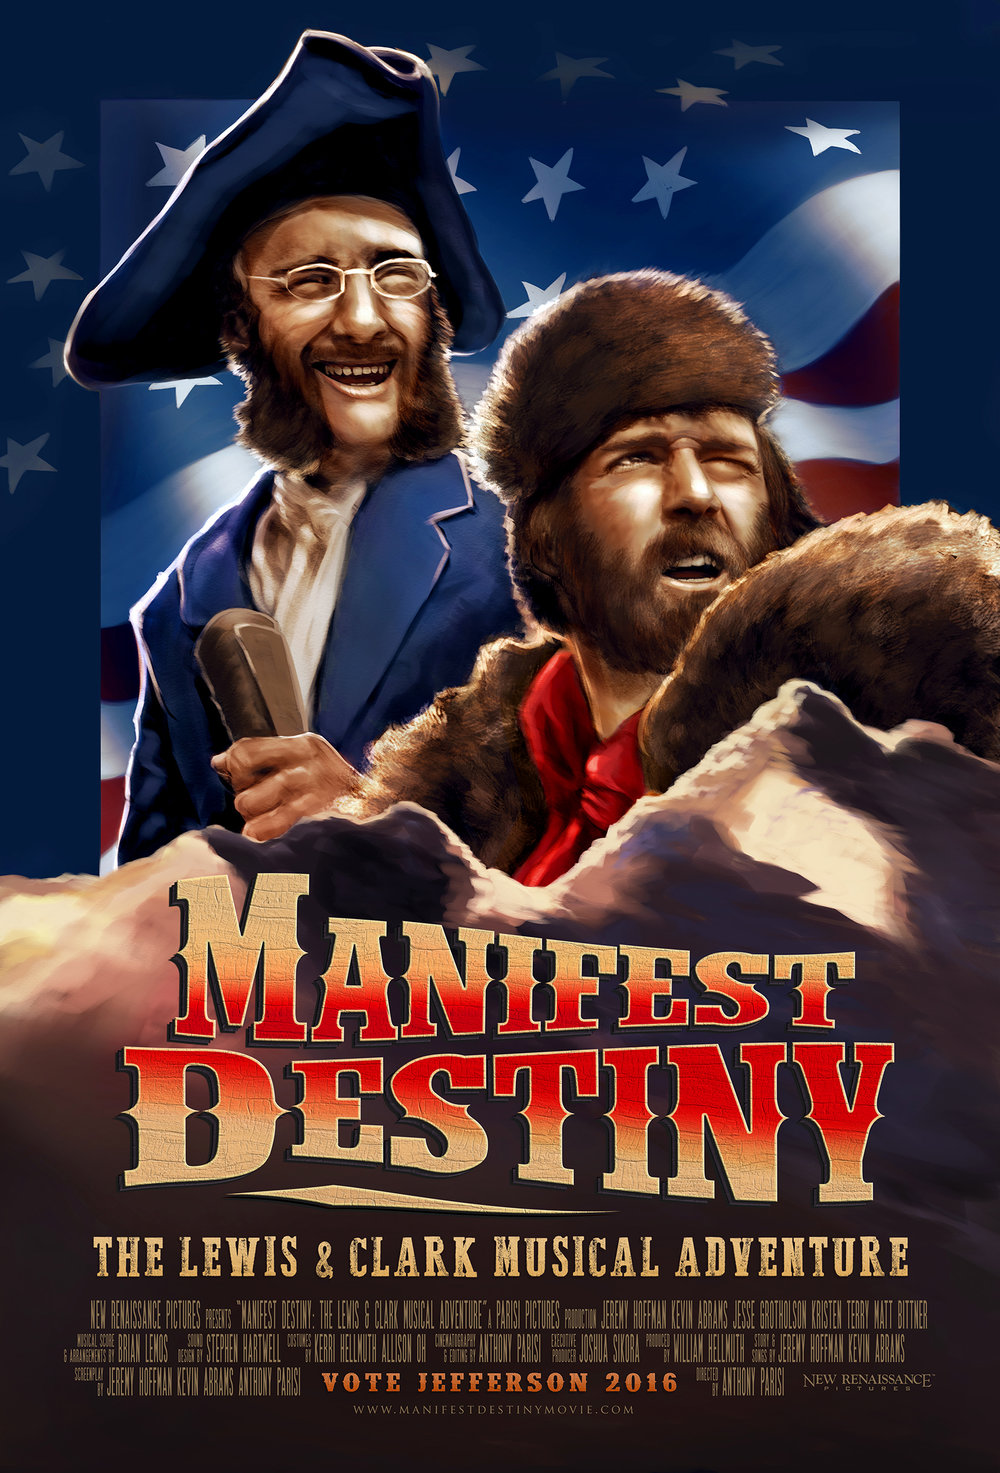 Manifest Destiny: The Lewis & Clark Musical Adventure (2016) - Strangely magical, this tall tale of Lewis and Clark becomes a romping spoof of American history. Follow the explorers out on the trail as they discover that destiny may be anything but manifest.Based on a cult web series, this feature-length, musical parable was hailed as